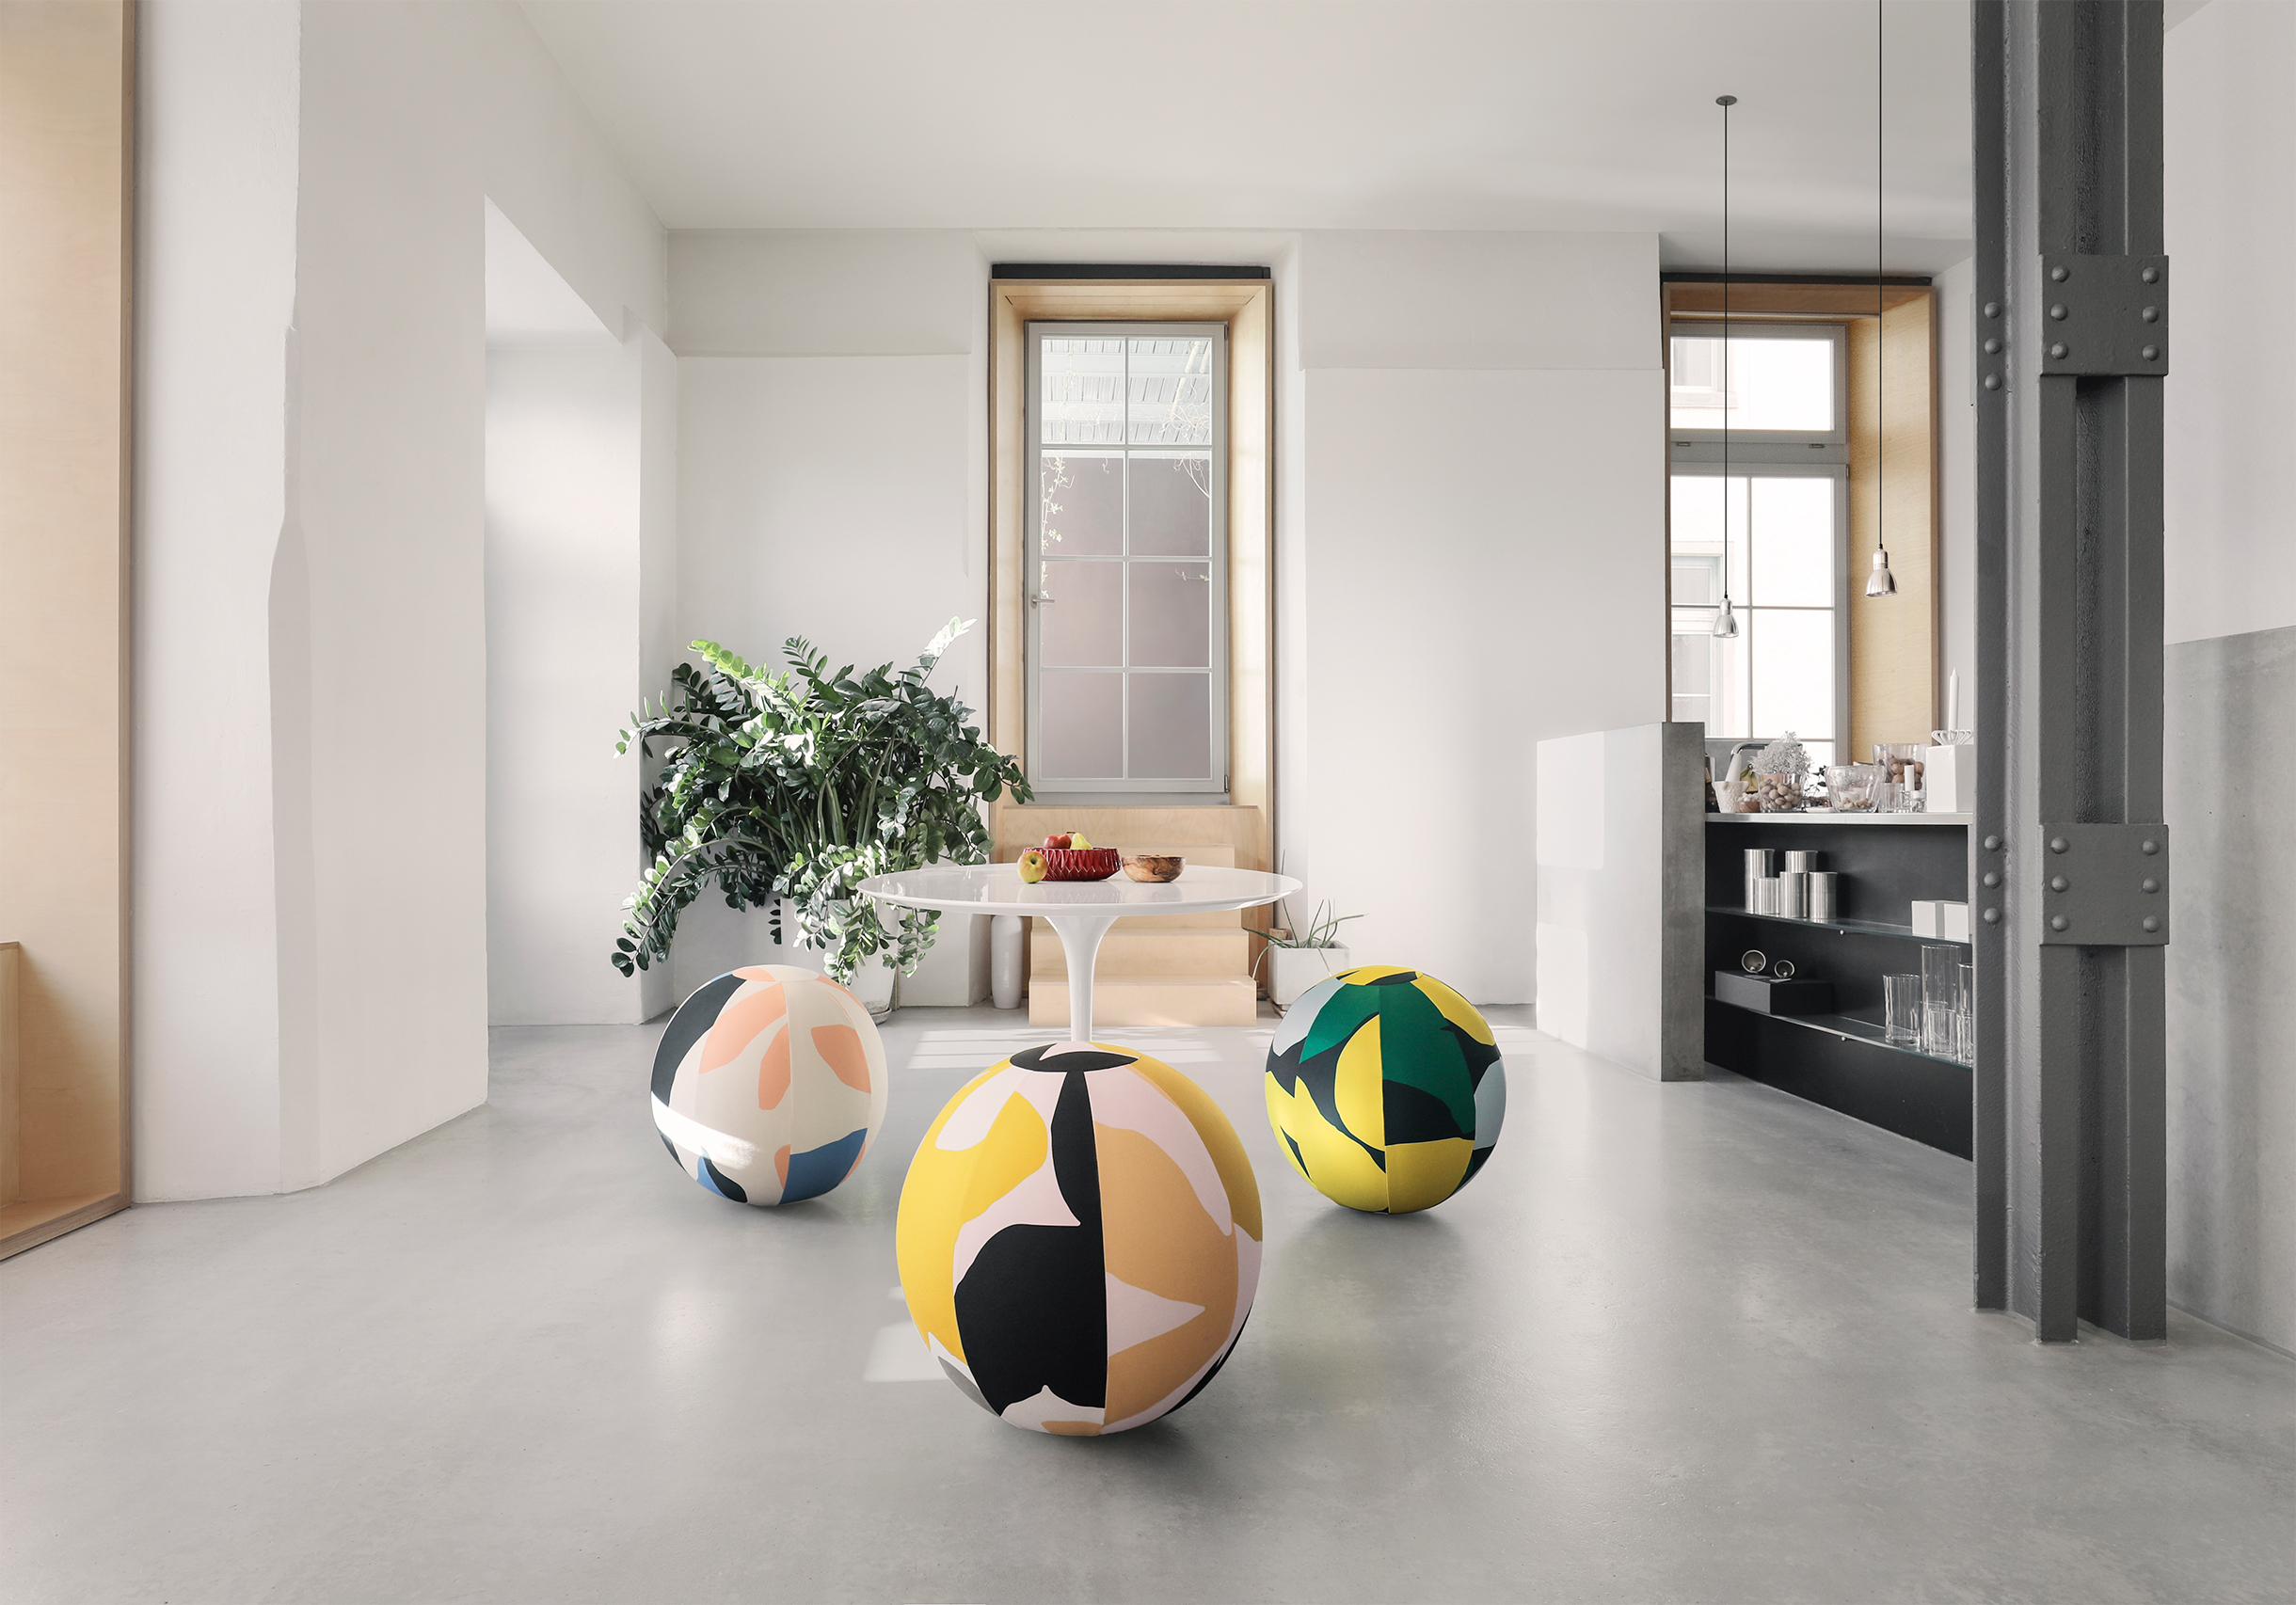 baola_swiss_ball_living_room